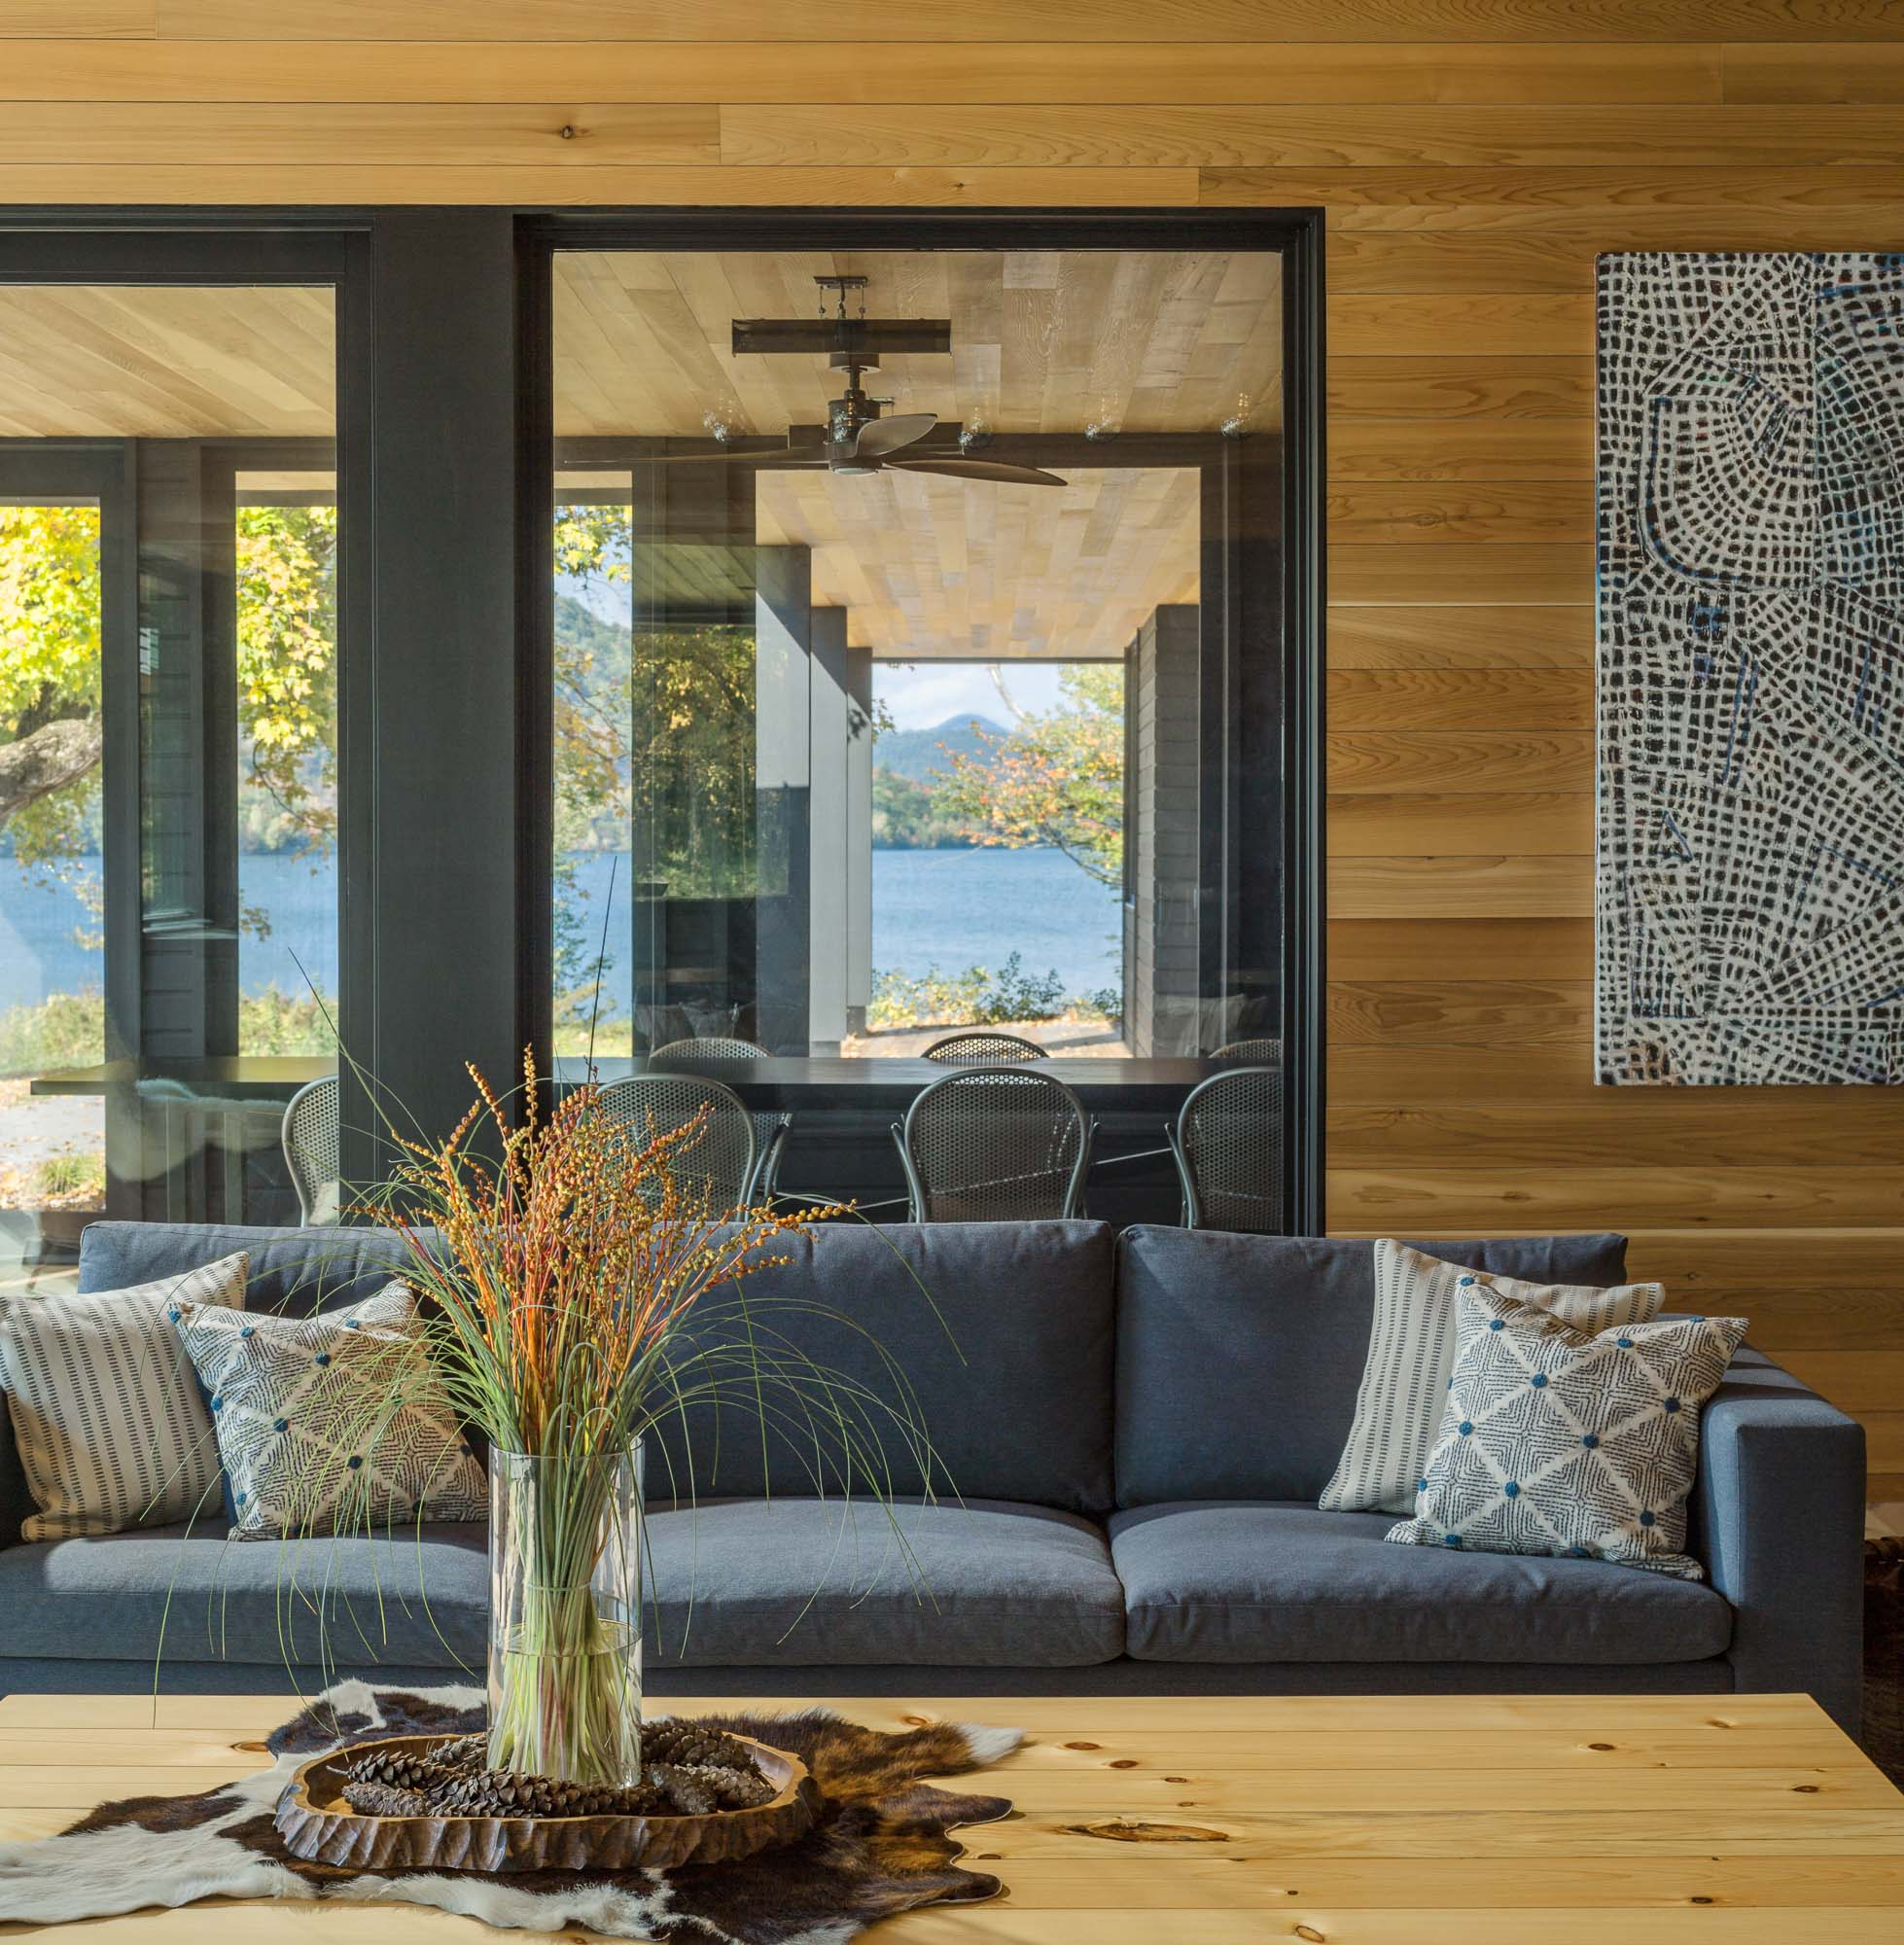 A modern lakeside home with a living room and nearby dining table.